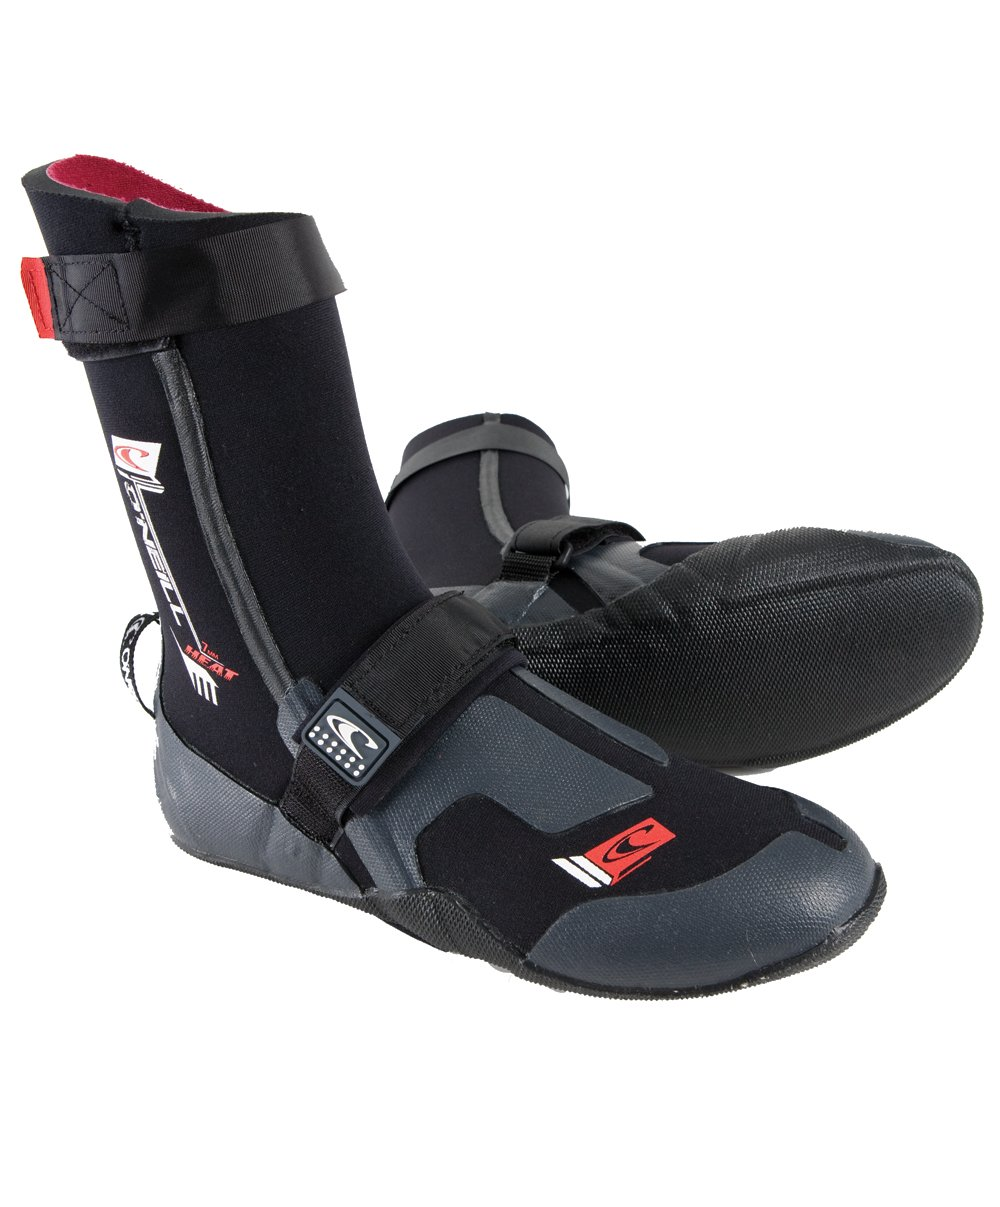 Amazon.com : O'Neill Wetsuits Mens Heat 7mm Round Toe Boot, Black, Size -  13 : Surfing Booties : Sports & Outdoors